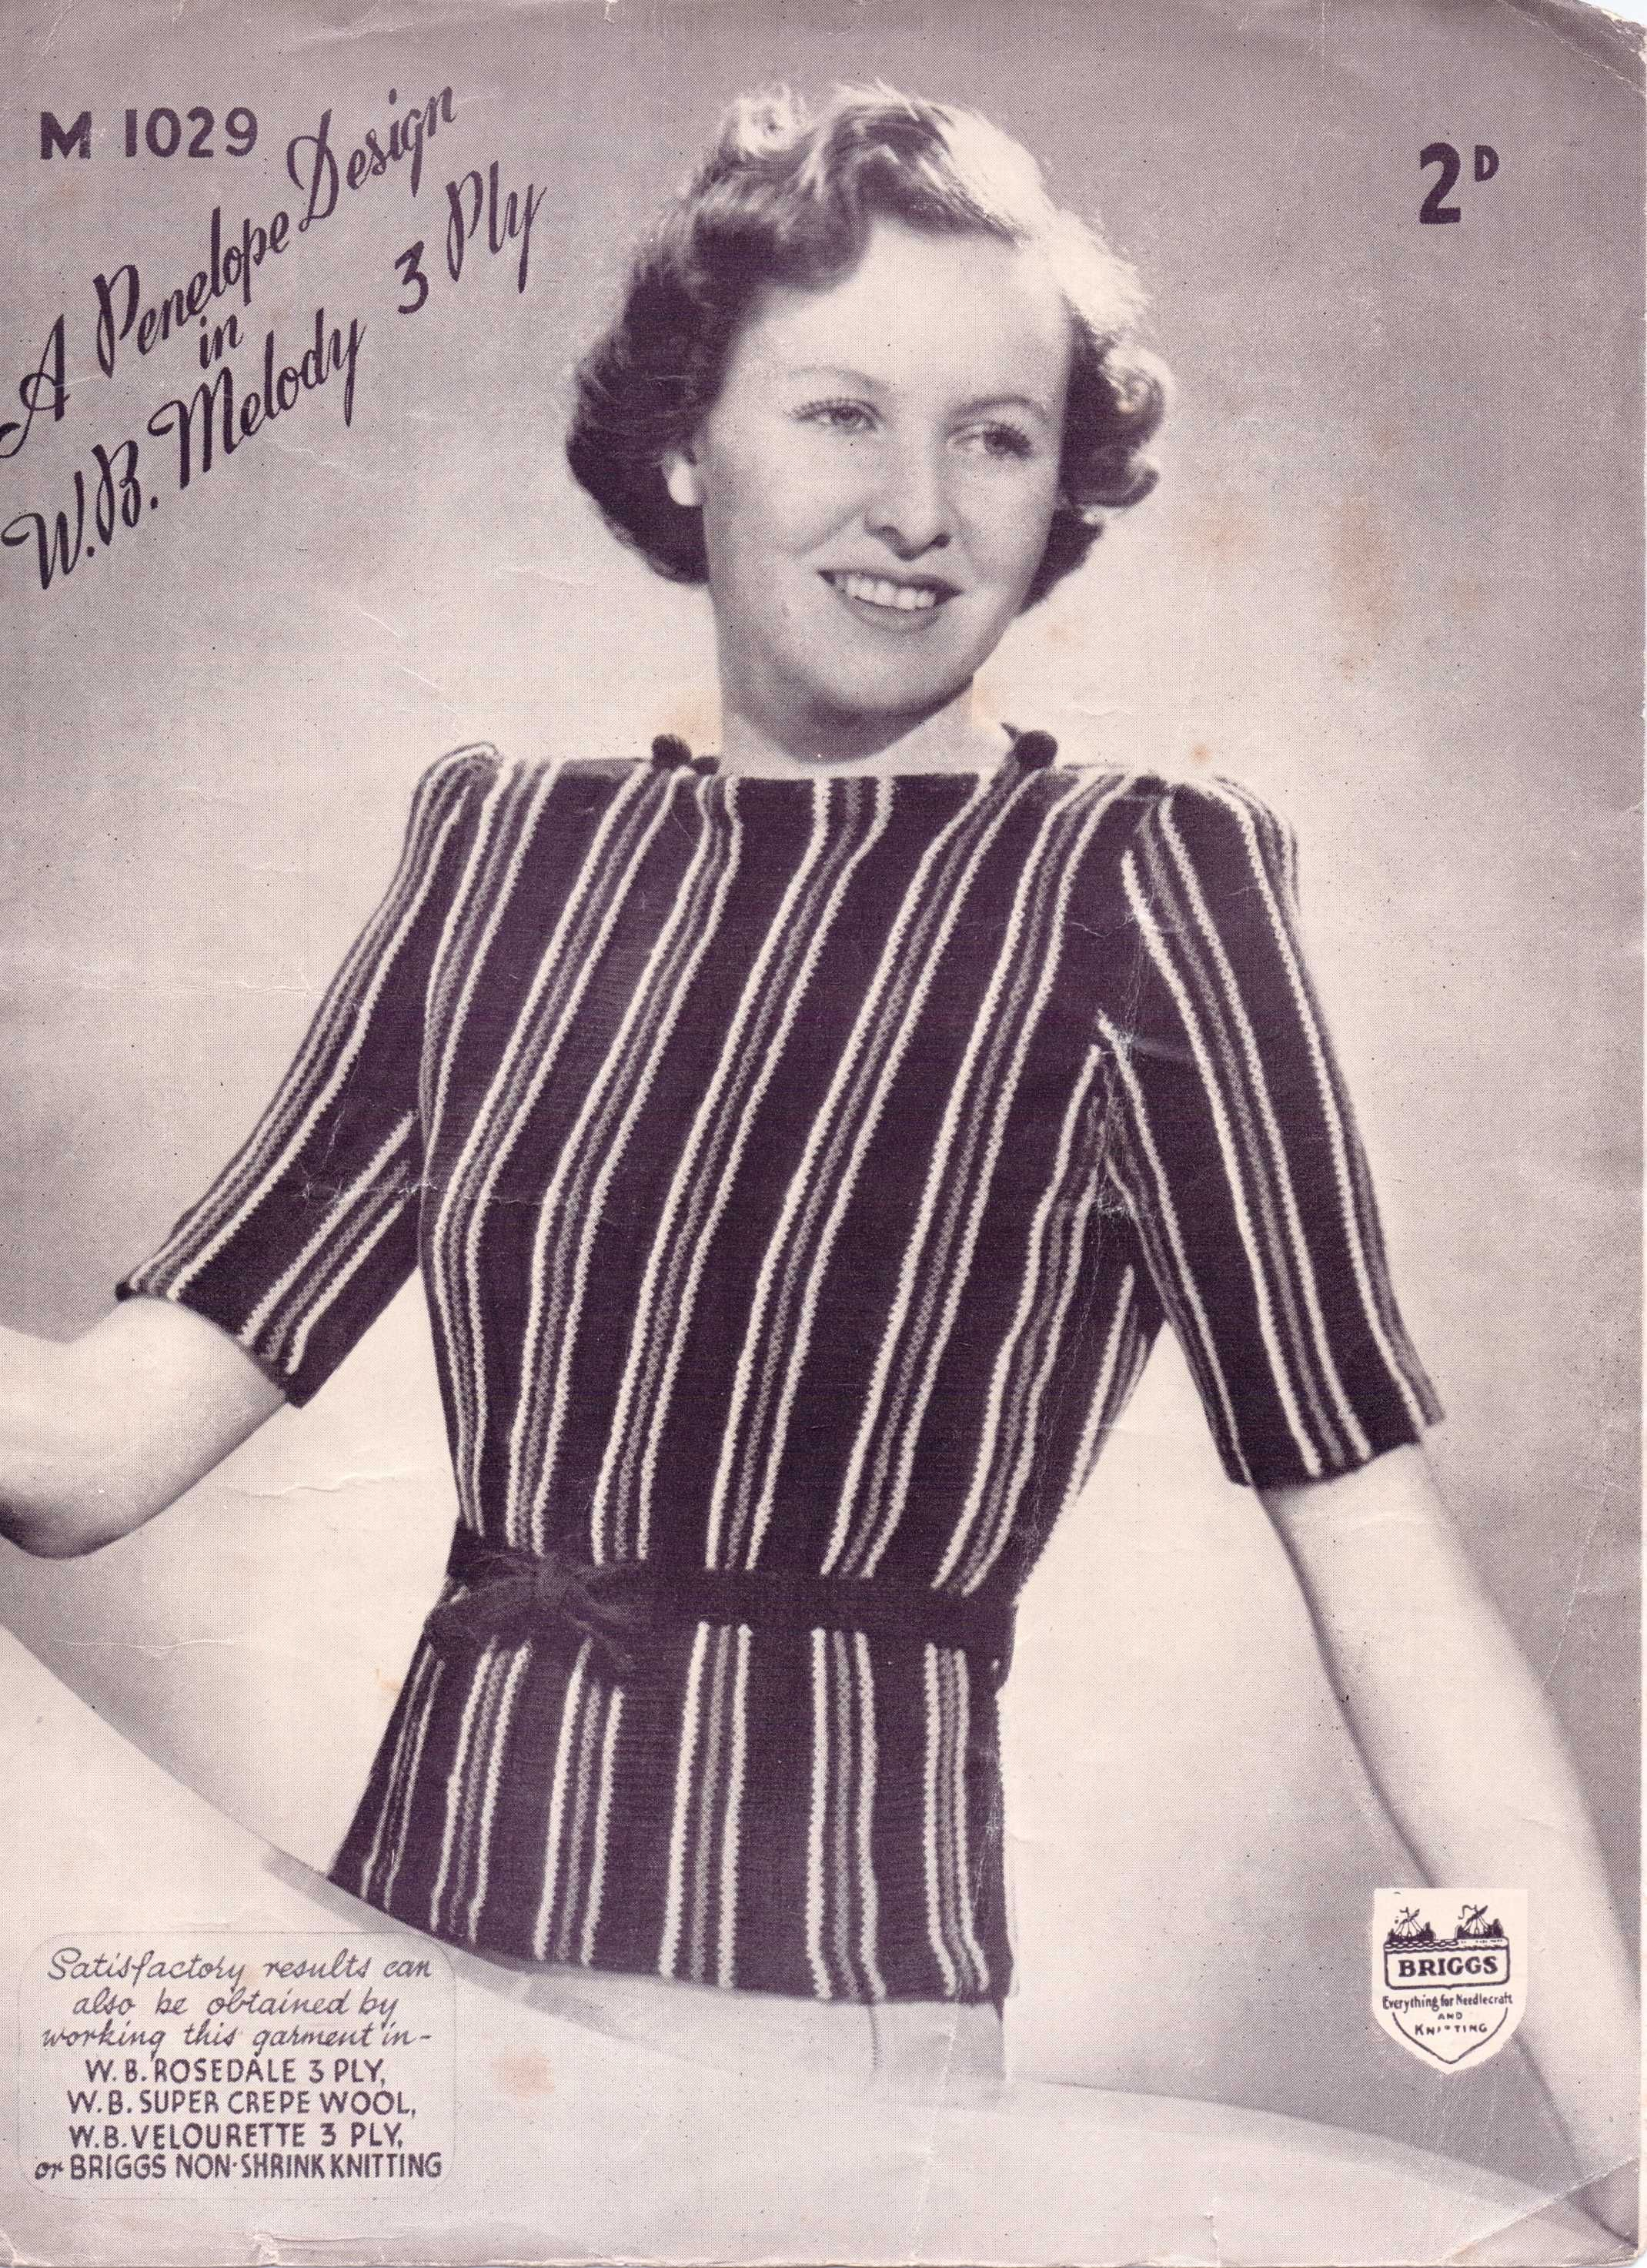 Free Knitting Pattern – a striped 3 ply top from which decade?